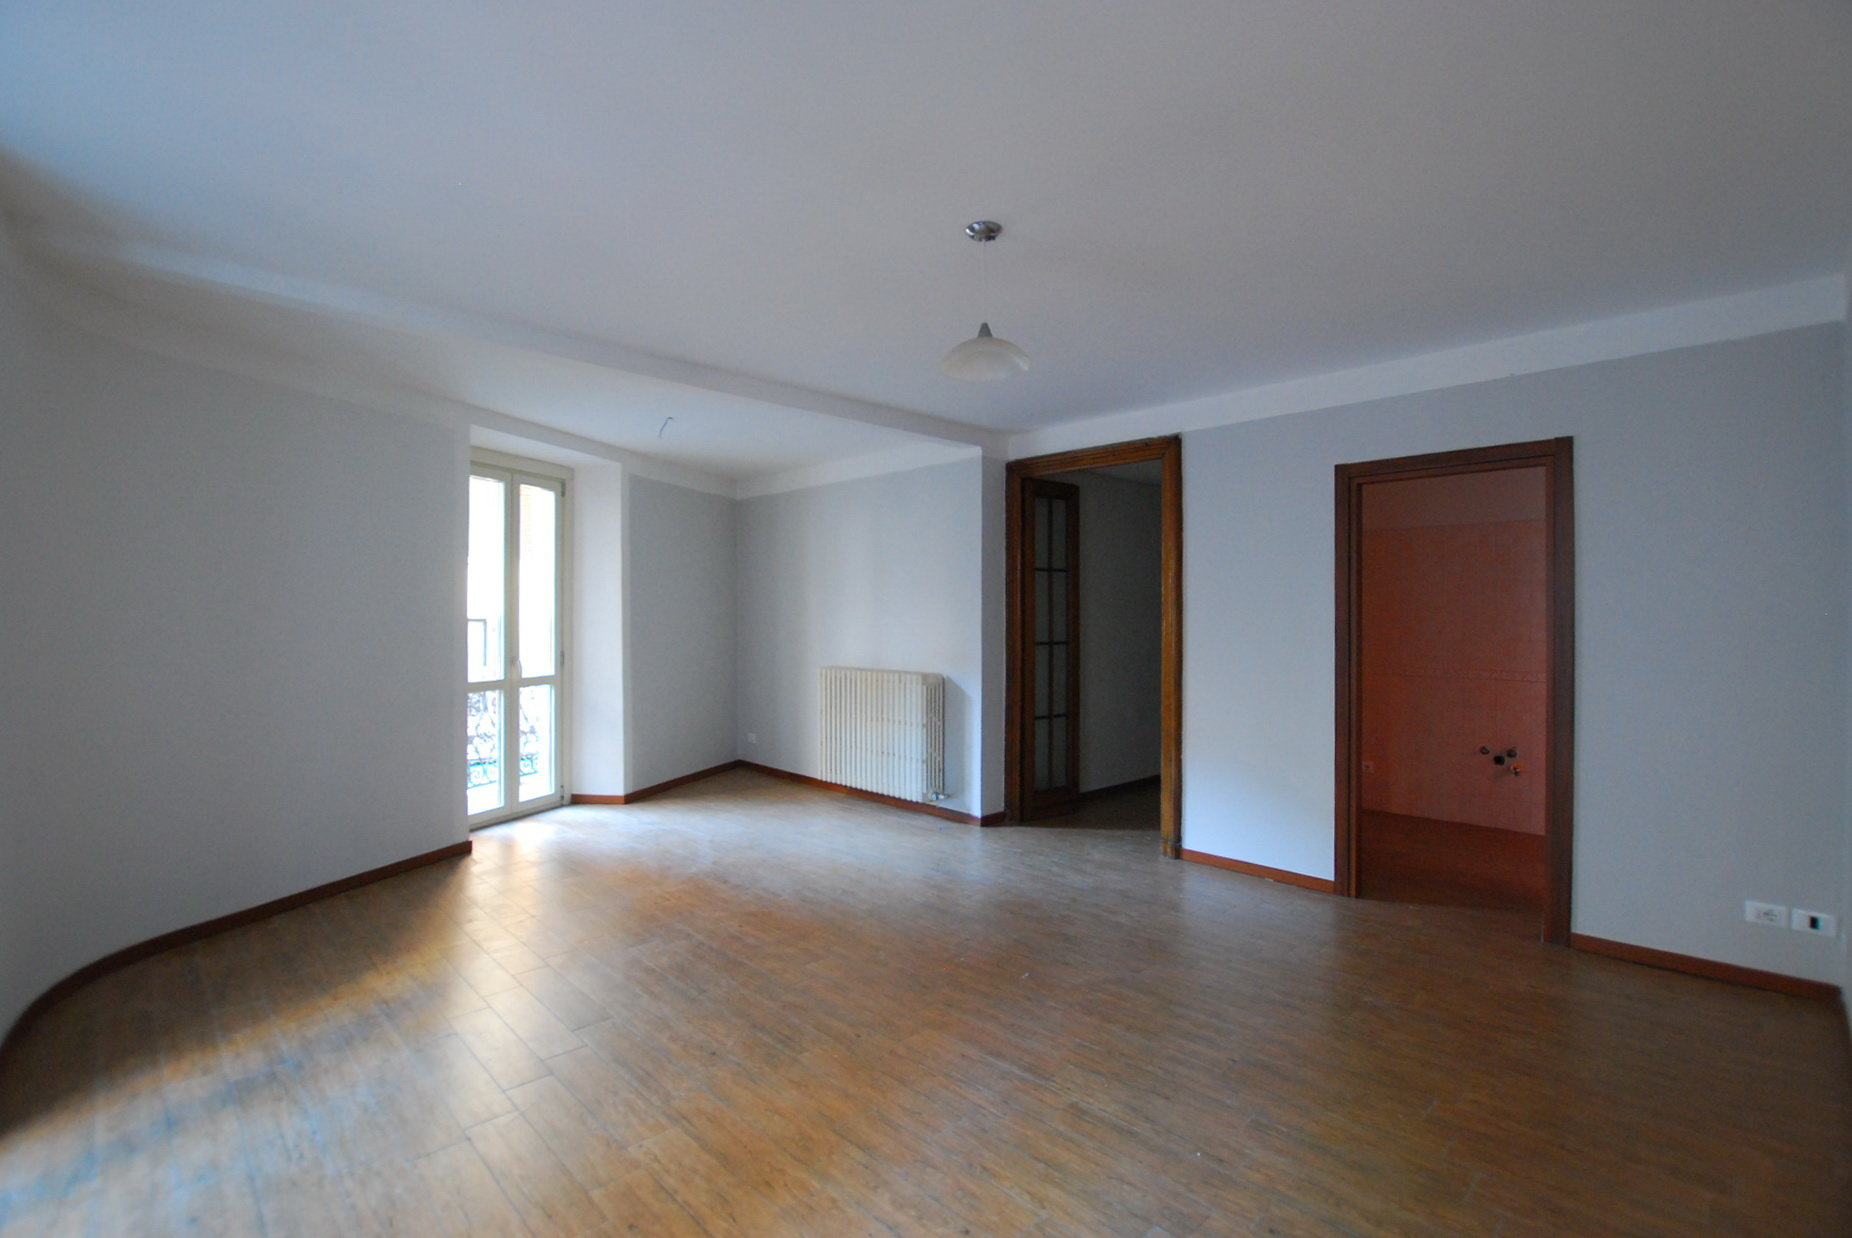 Rent apartment in the centre of Stresa- wide living room